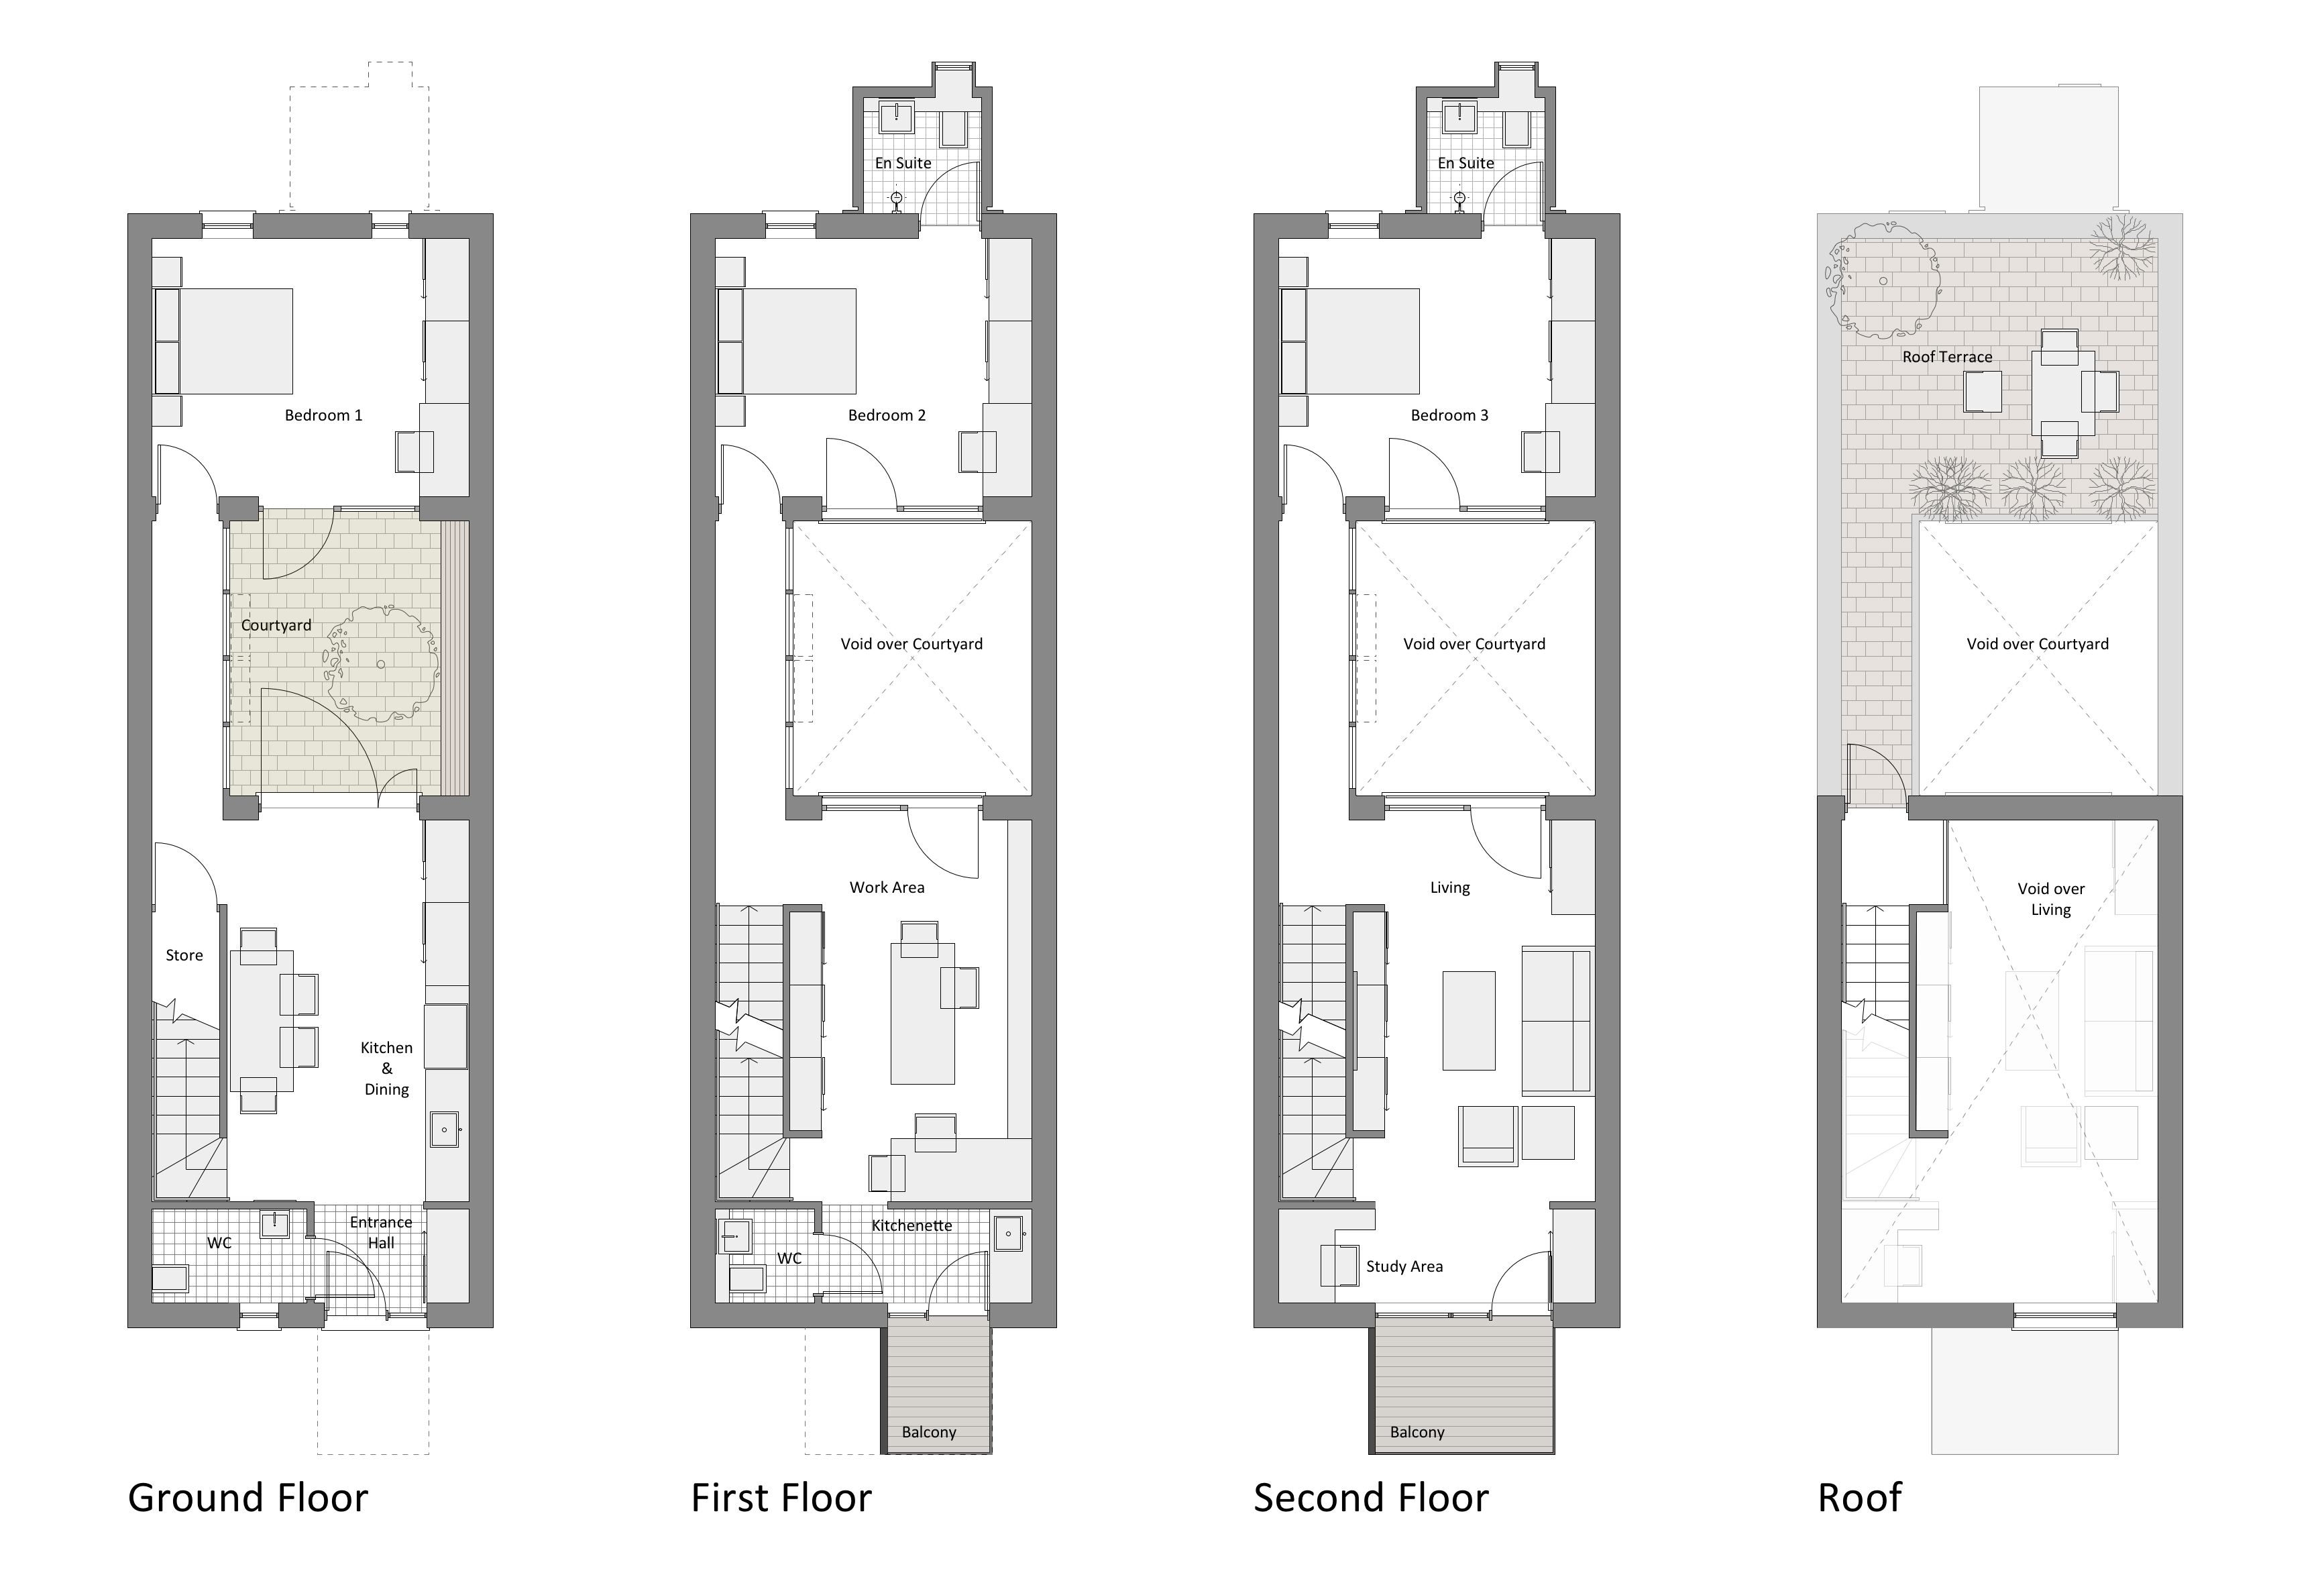 Courtyard row house marc medland architect for Home design layout plan